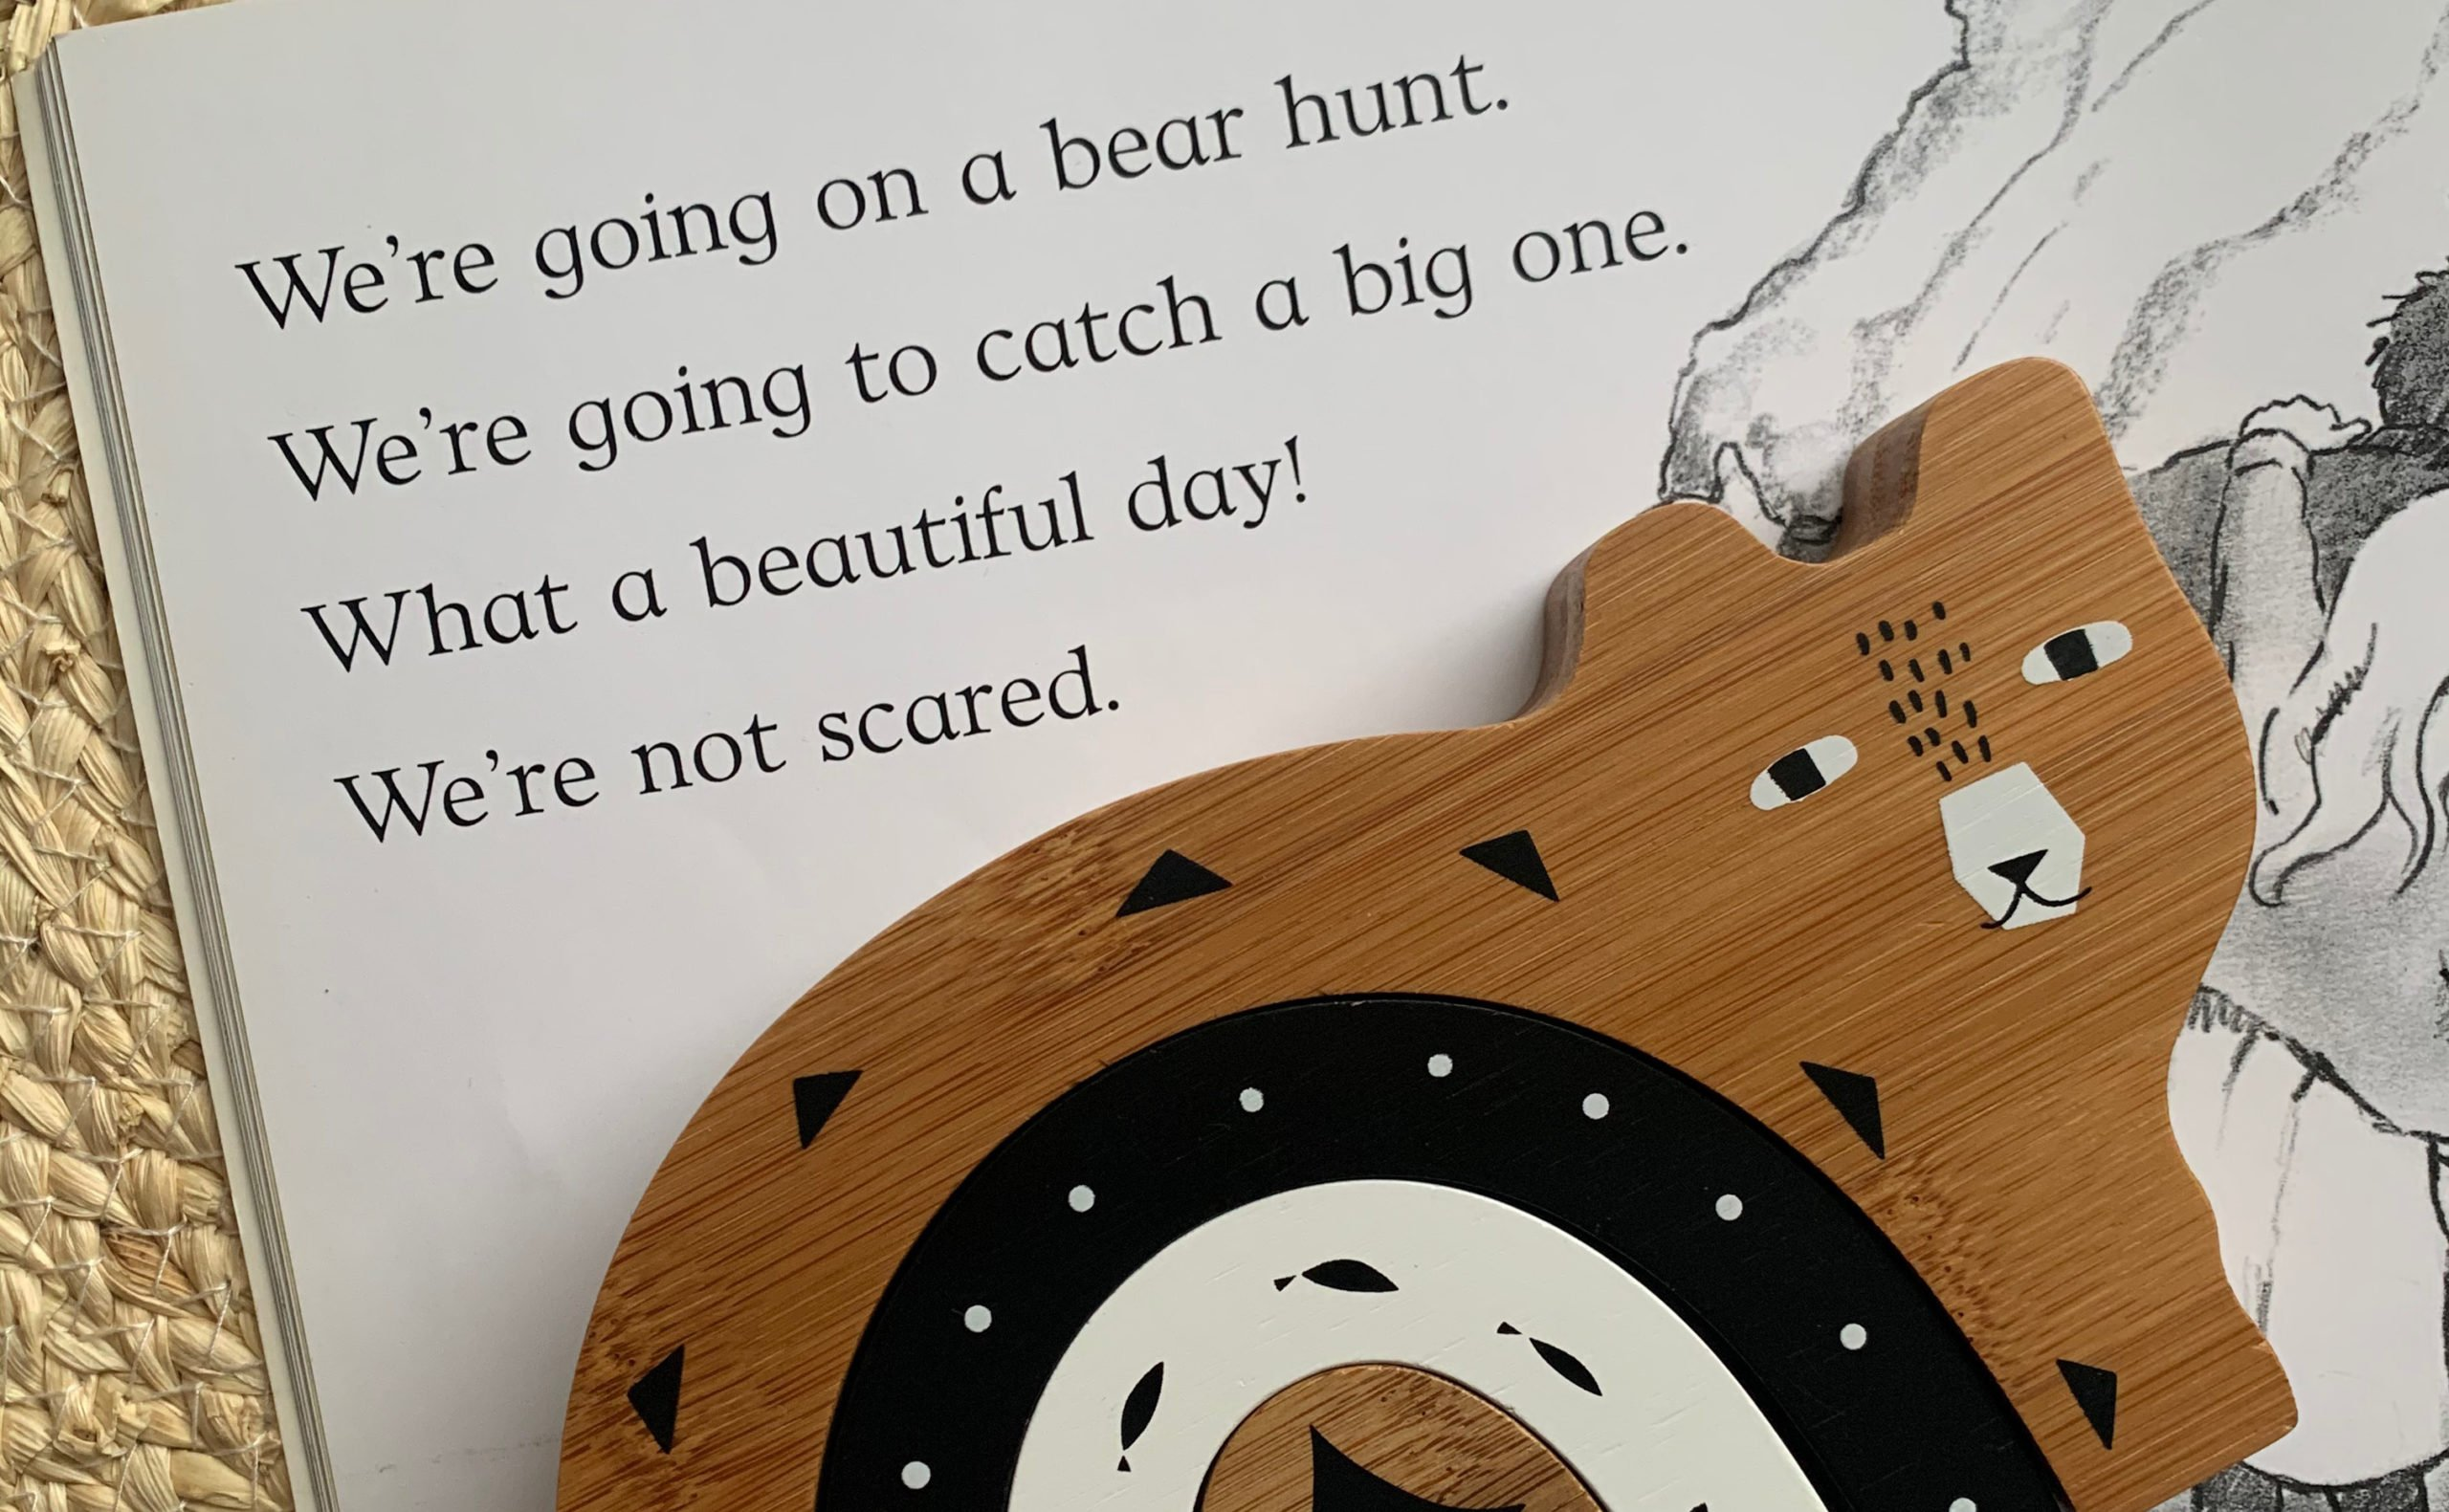 Bear Hunt with wooden bear